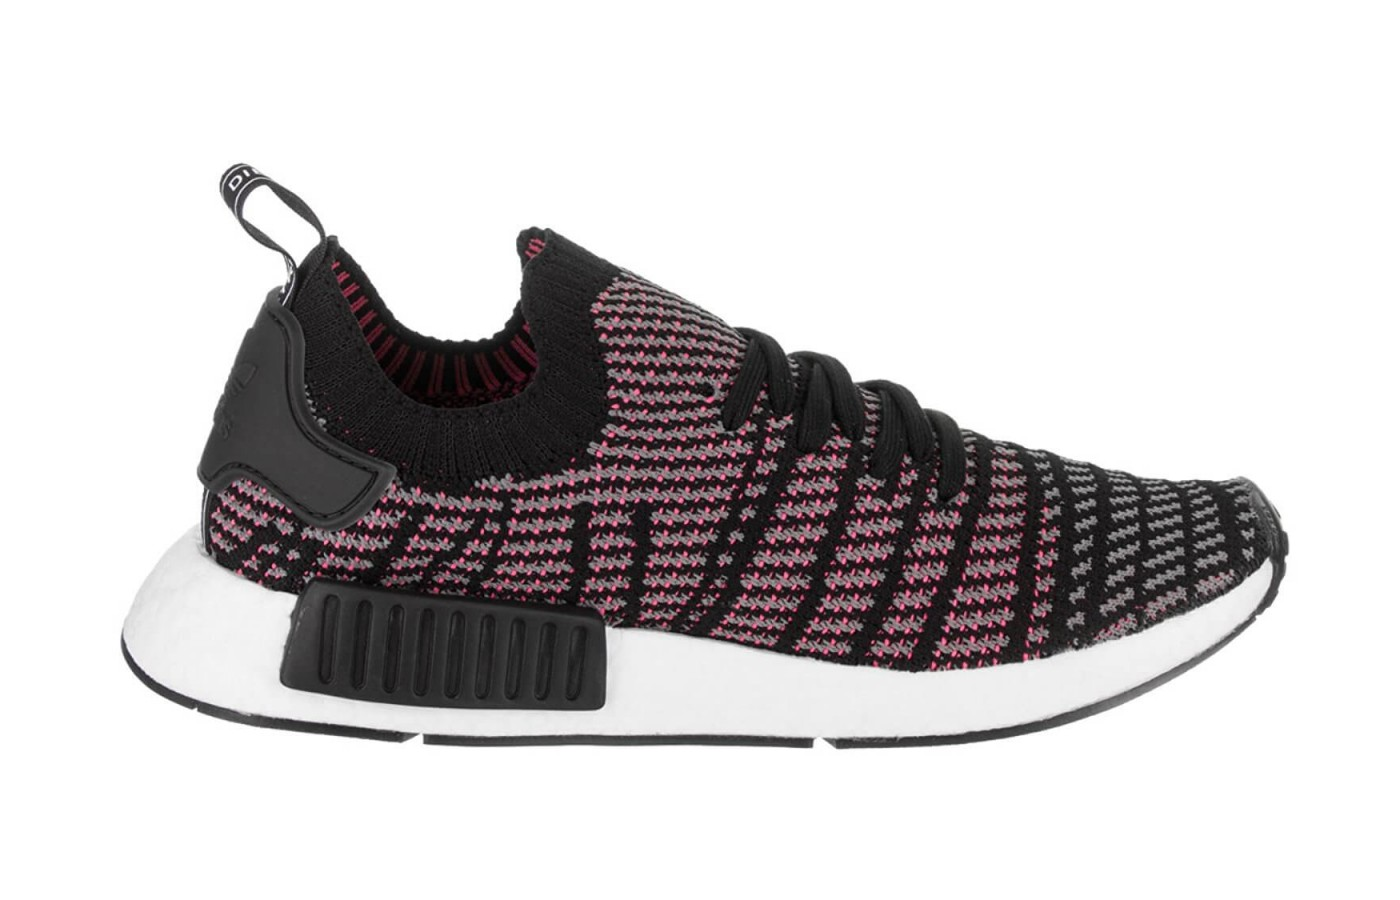 756d337bd6542 ... The Adidas NMD R1 Stlt Primeknit features a Boost midsole ...